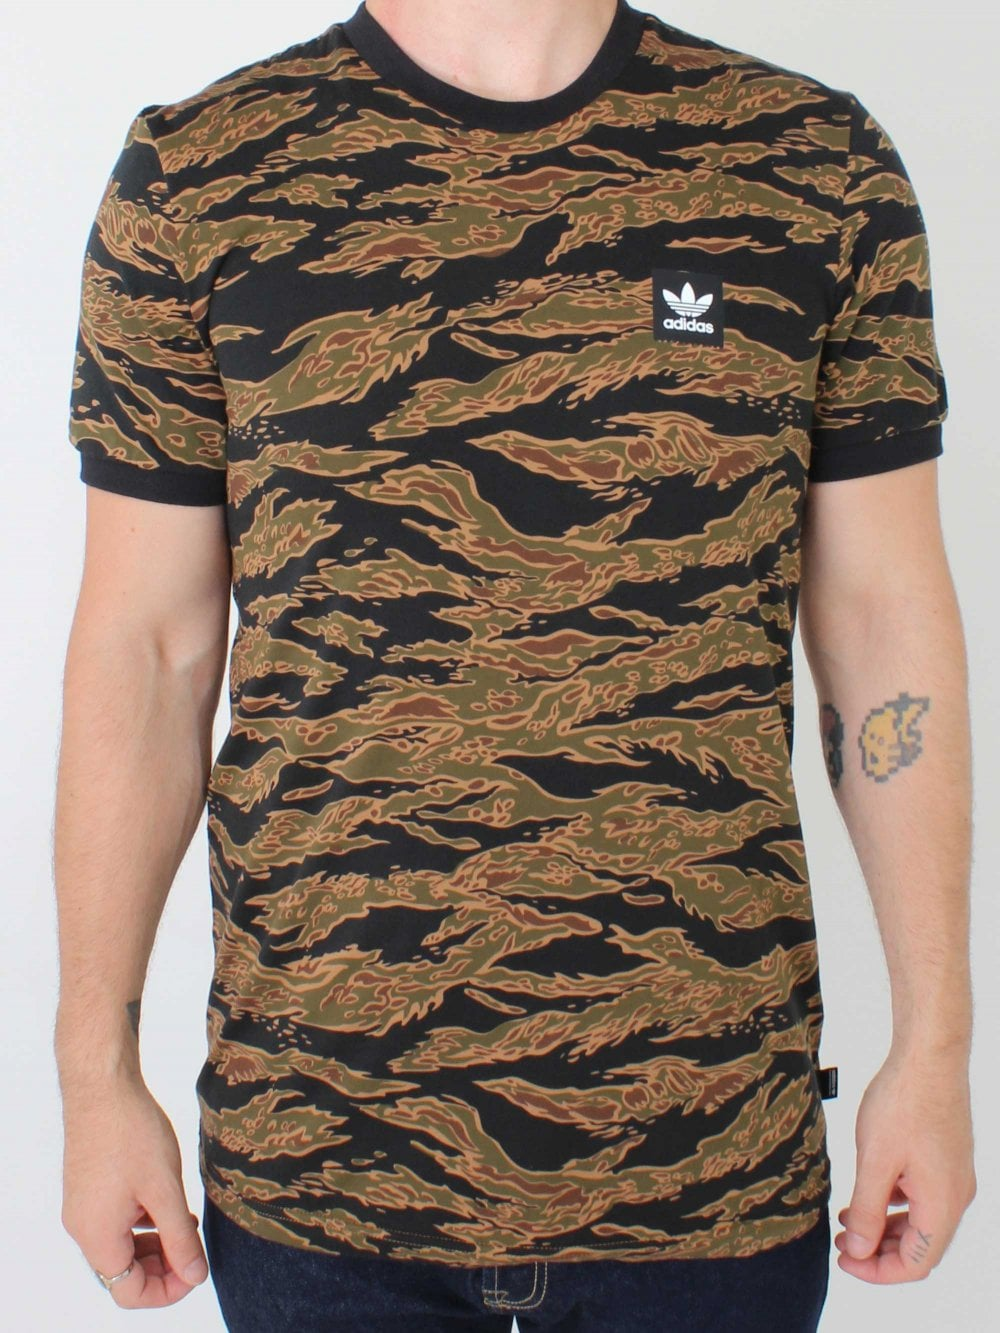 b1108af08841e2 Adidas Camo AOP T-Shirt in Camo | Northern Threads